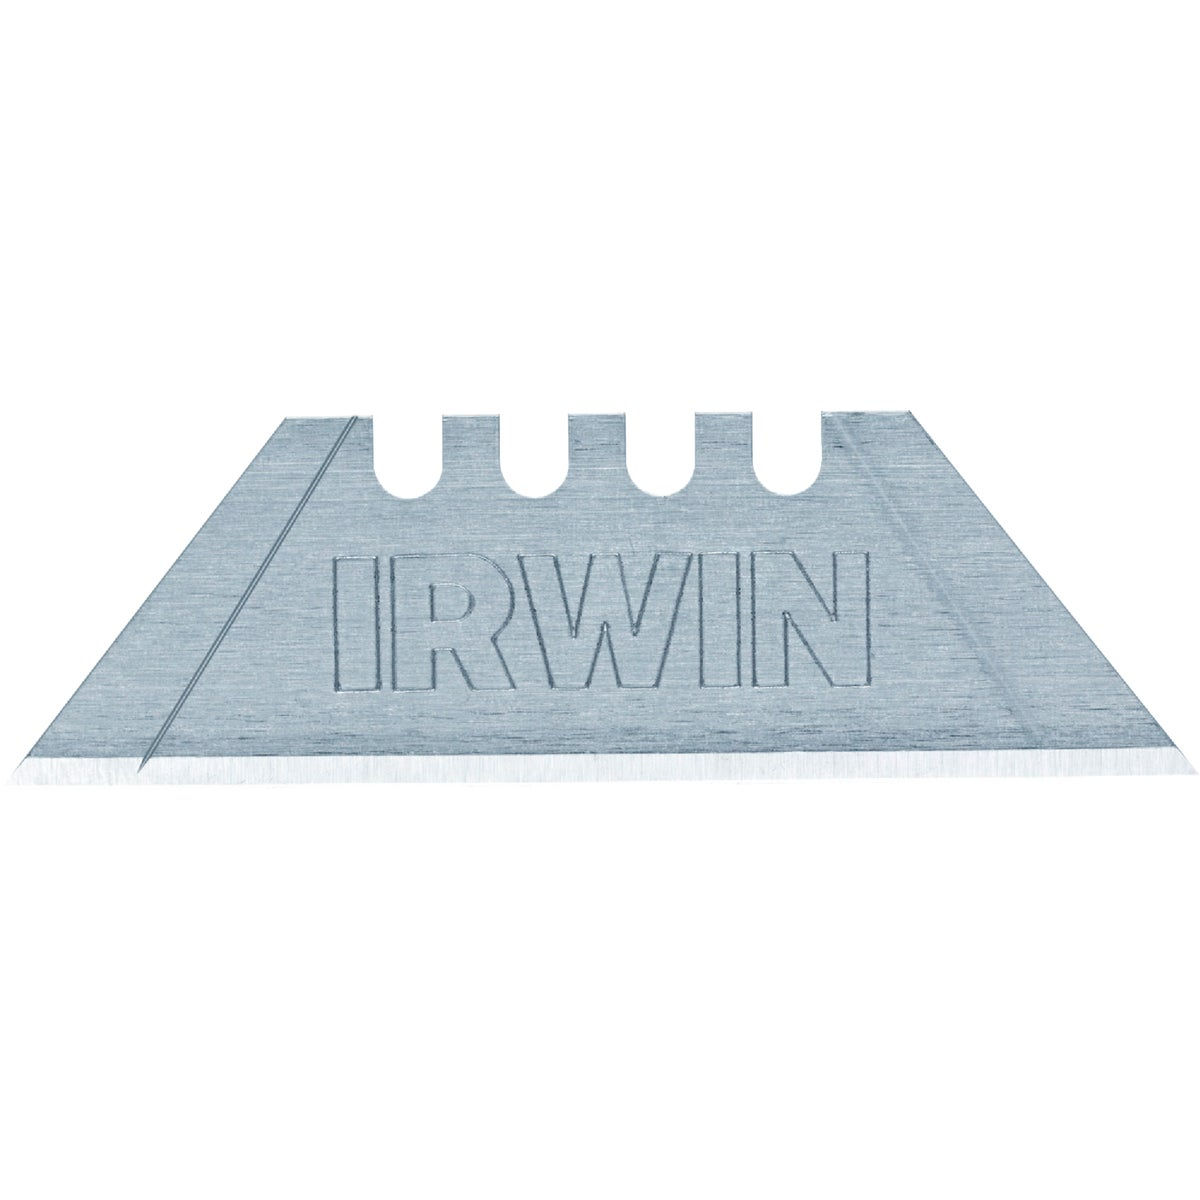 50PK 4-PT CARBON BLADE - 1764985 by Irwin Industr Tool